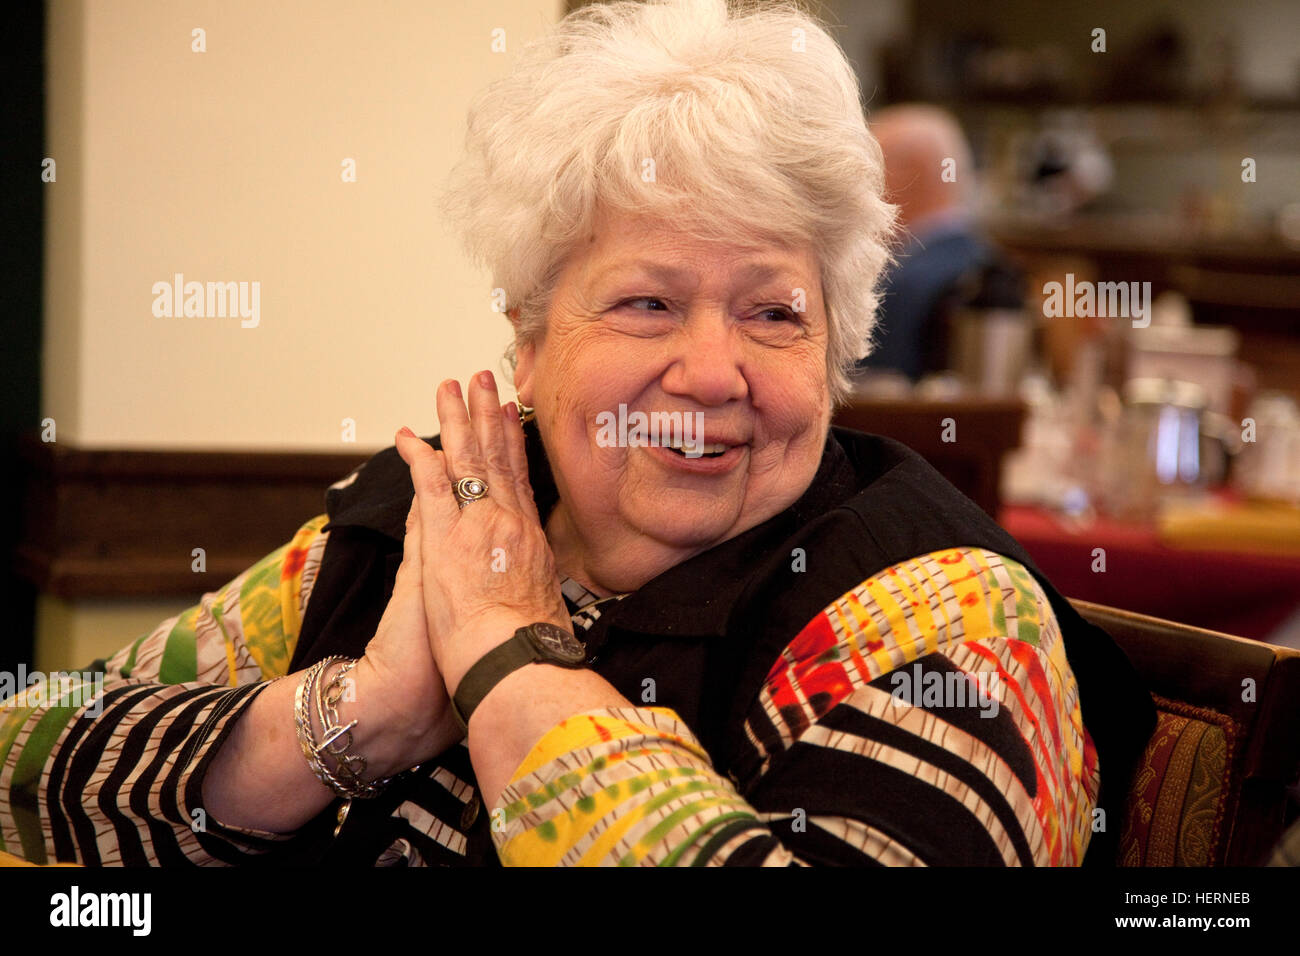 Attractive senior woman having a happy moment at a dinner party. Downers Grove Illinois IL USA - Stock Image